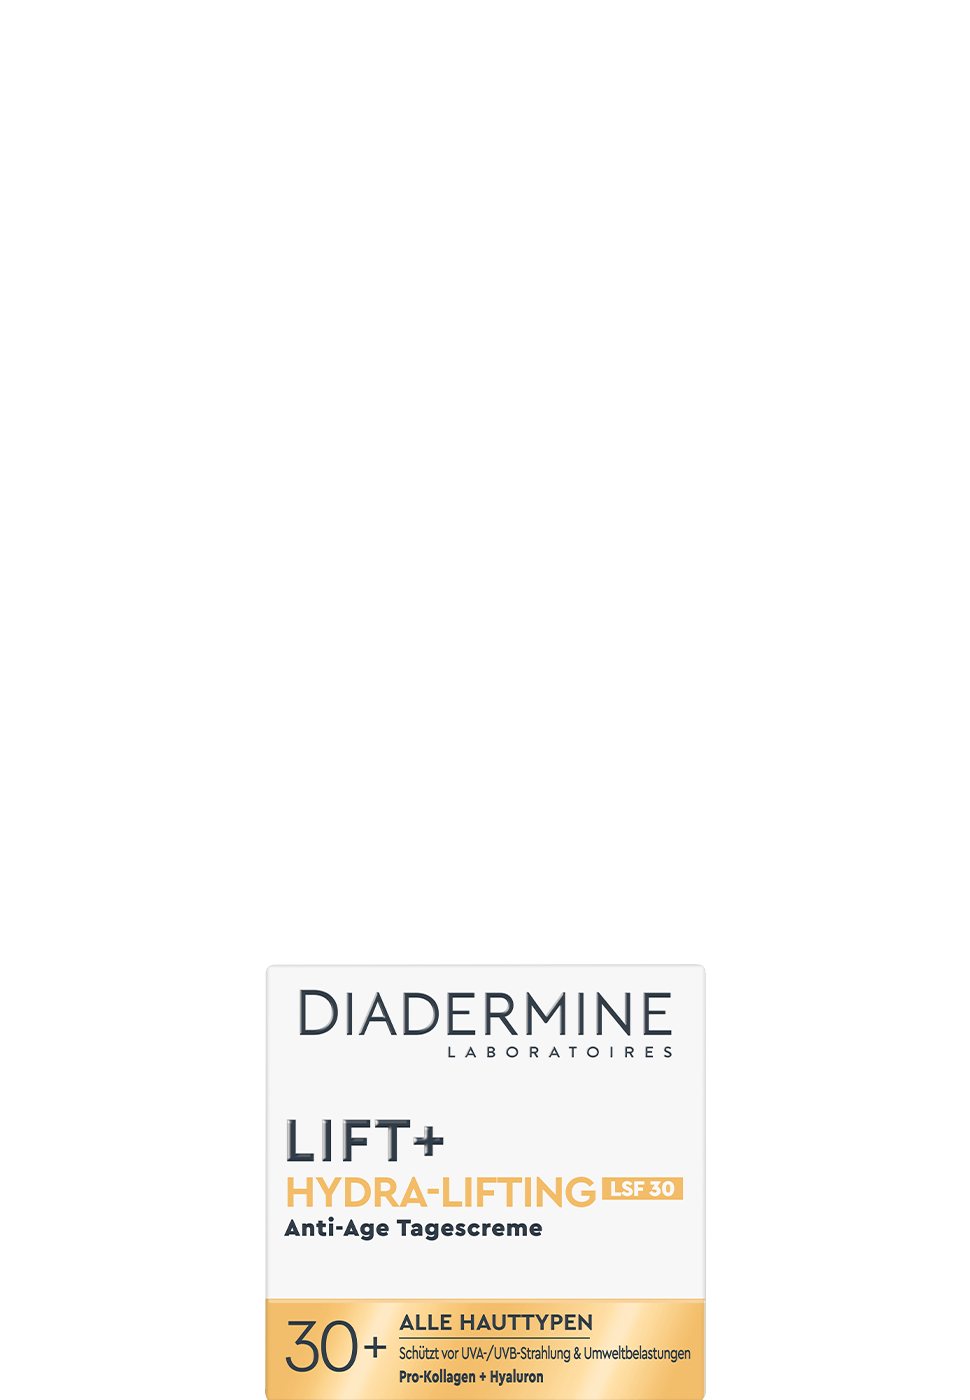 diadermine_de_lift_plus_hydra_lifting_tagescreme_lsf30_970x1400